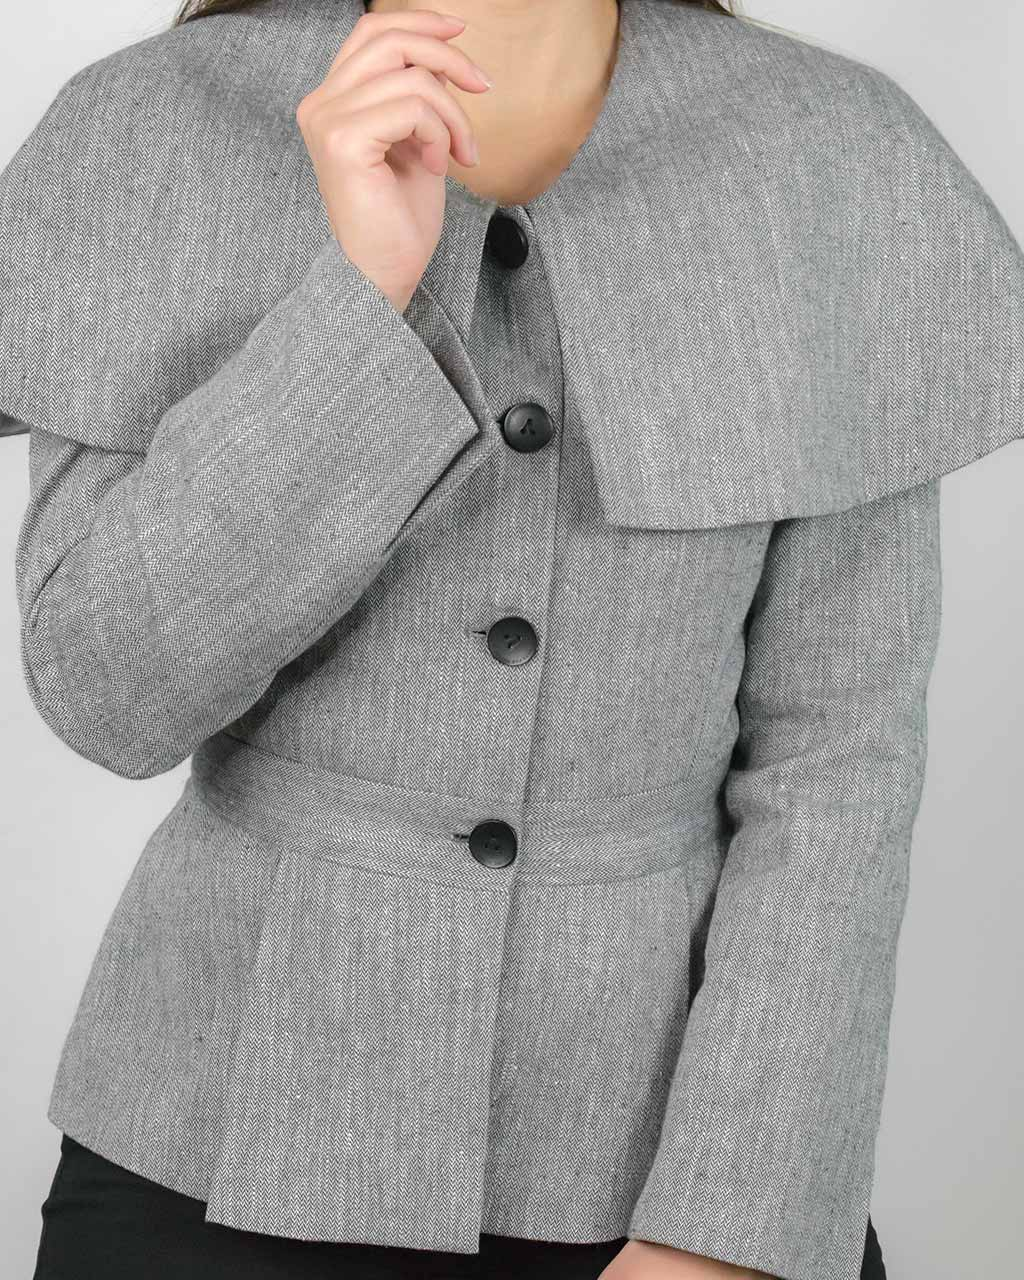 ADKN's grey houndstooth tweed Abbe grey coat blazer made from sustainable hemp